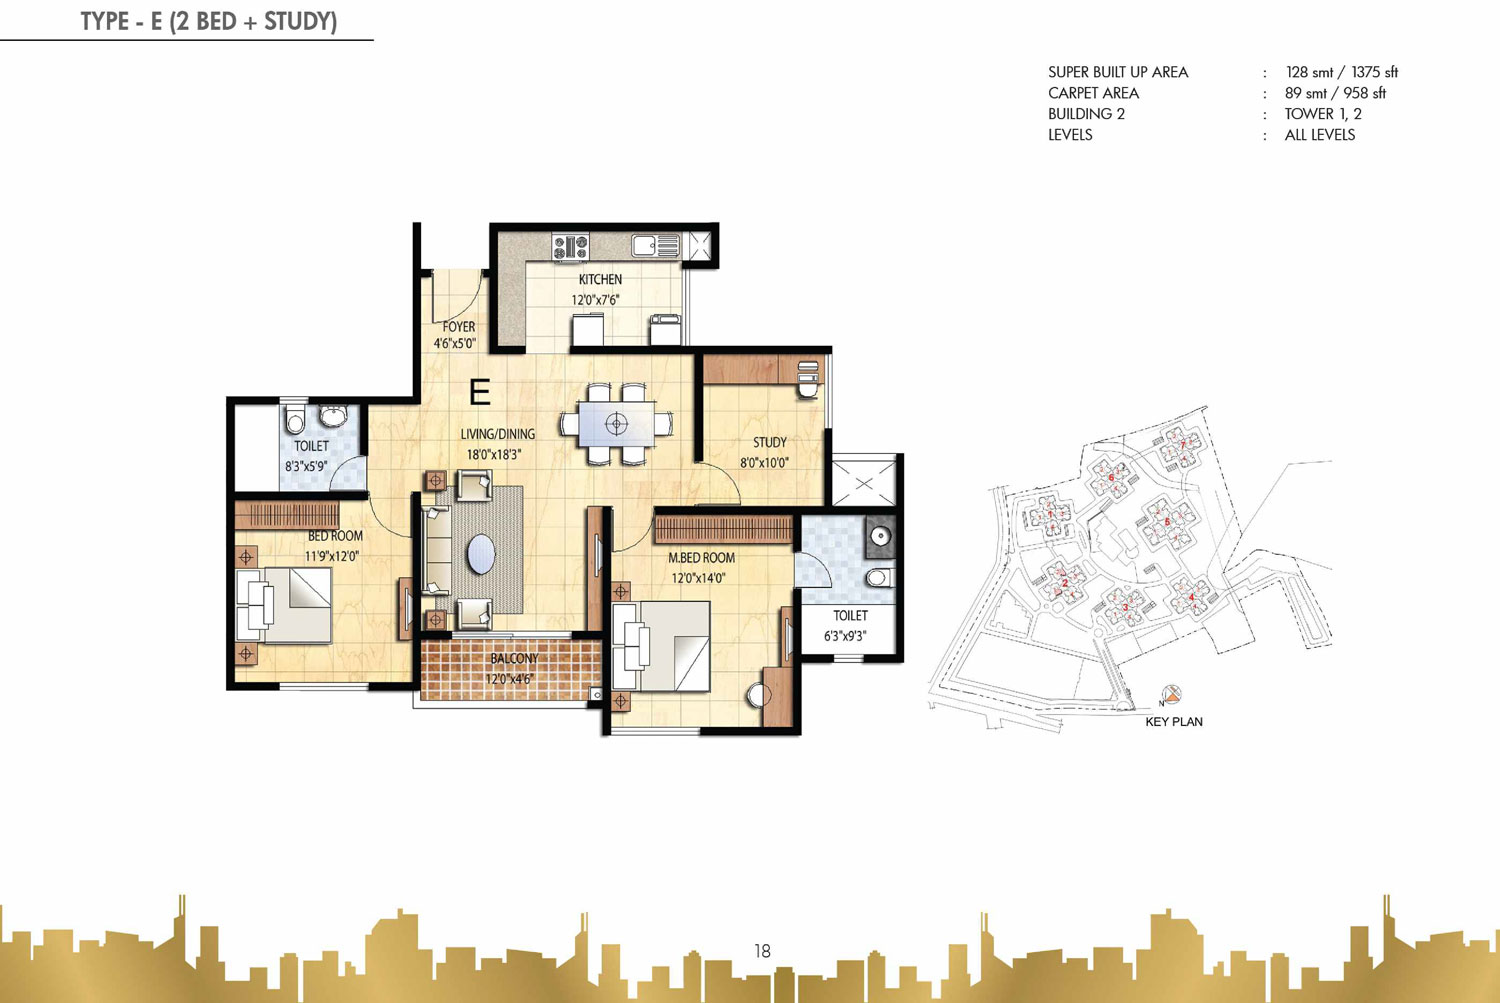 Type E - 2 Bed - 1375 Sq Ft